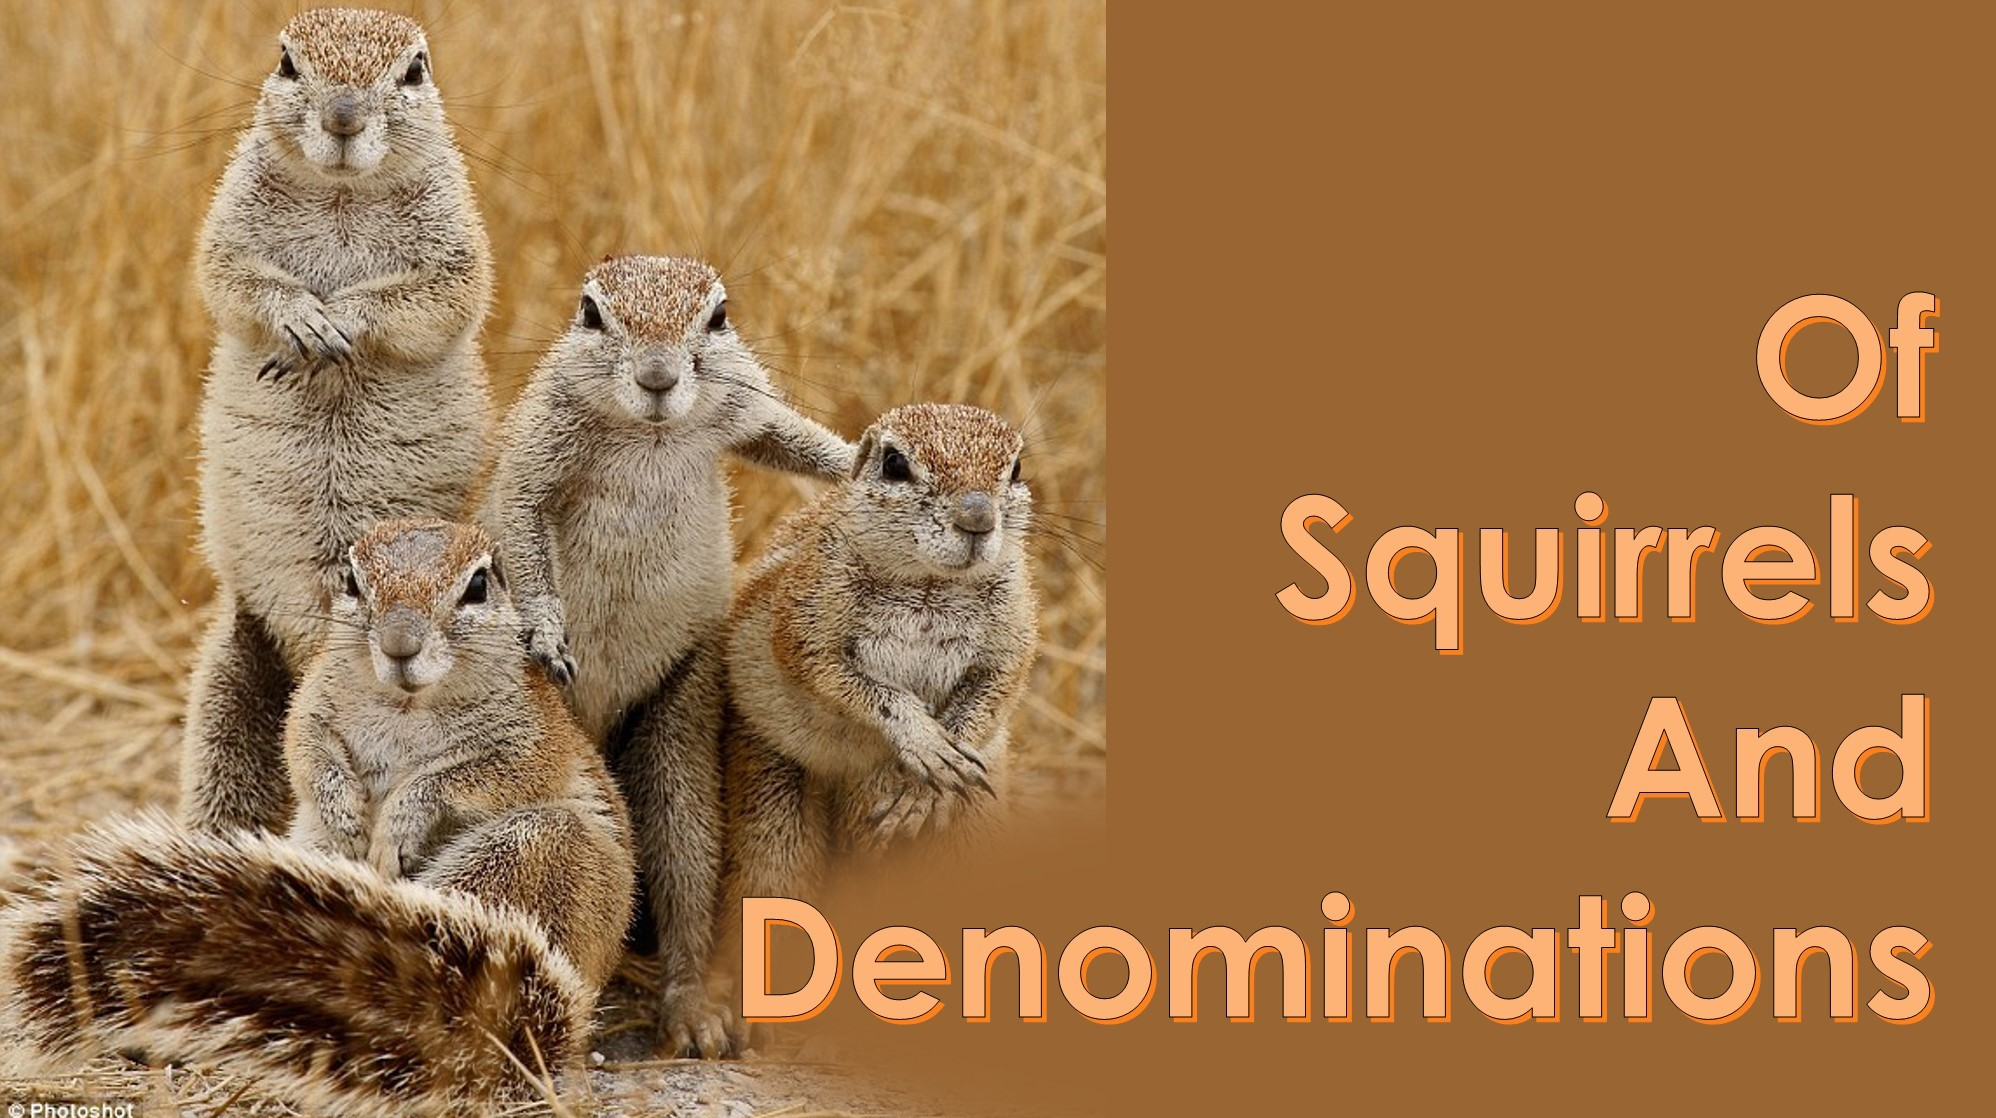 You are currently viewing Squirrels and Denominations – June 6th